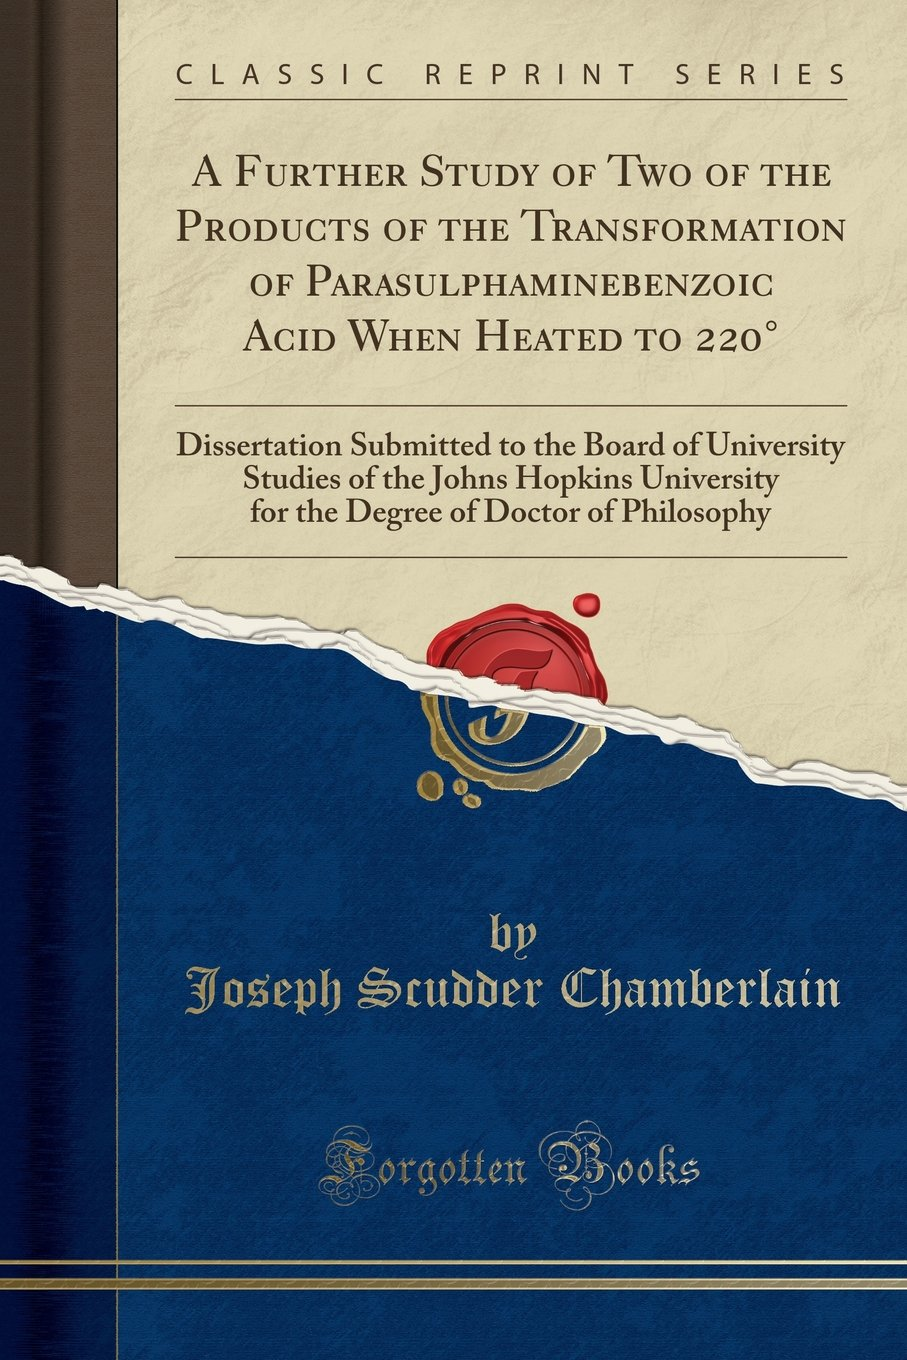 Read Online A Further Study of Two of the Products of the Transformation of Parasulphaminebenzoic Acid When Heated to 220°: Dissertation Submitted to the Board of ... for the Degree of Doctor of Philosophy ebook